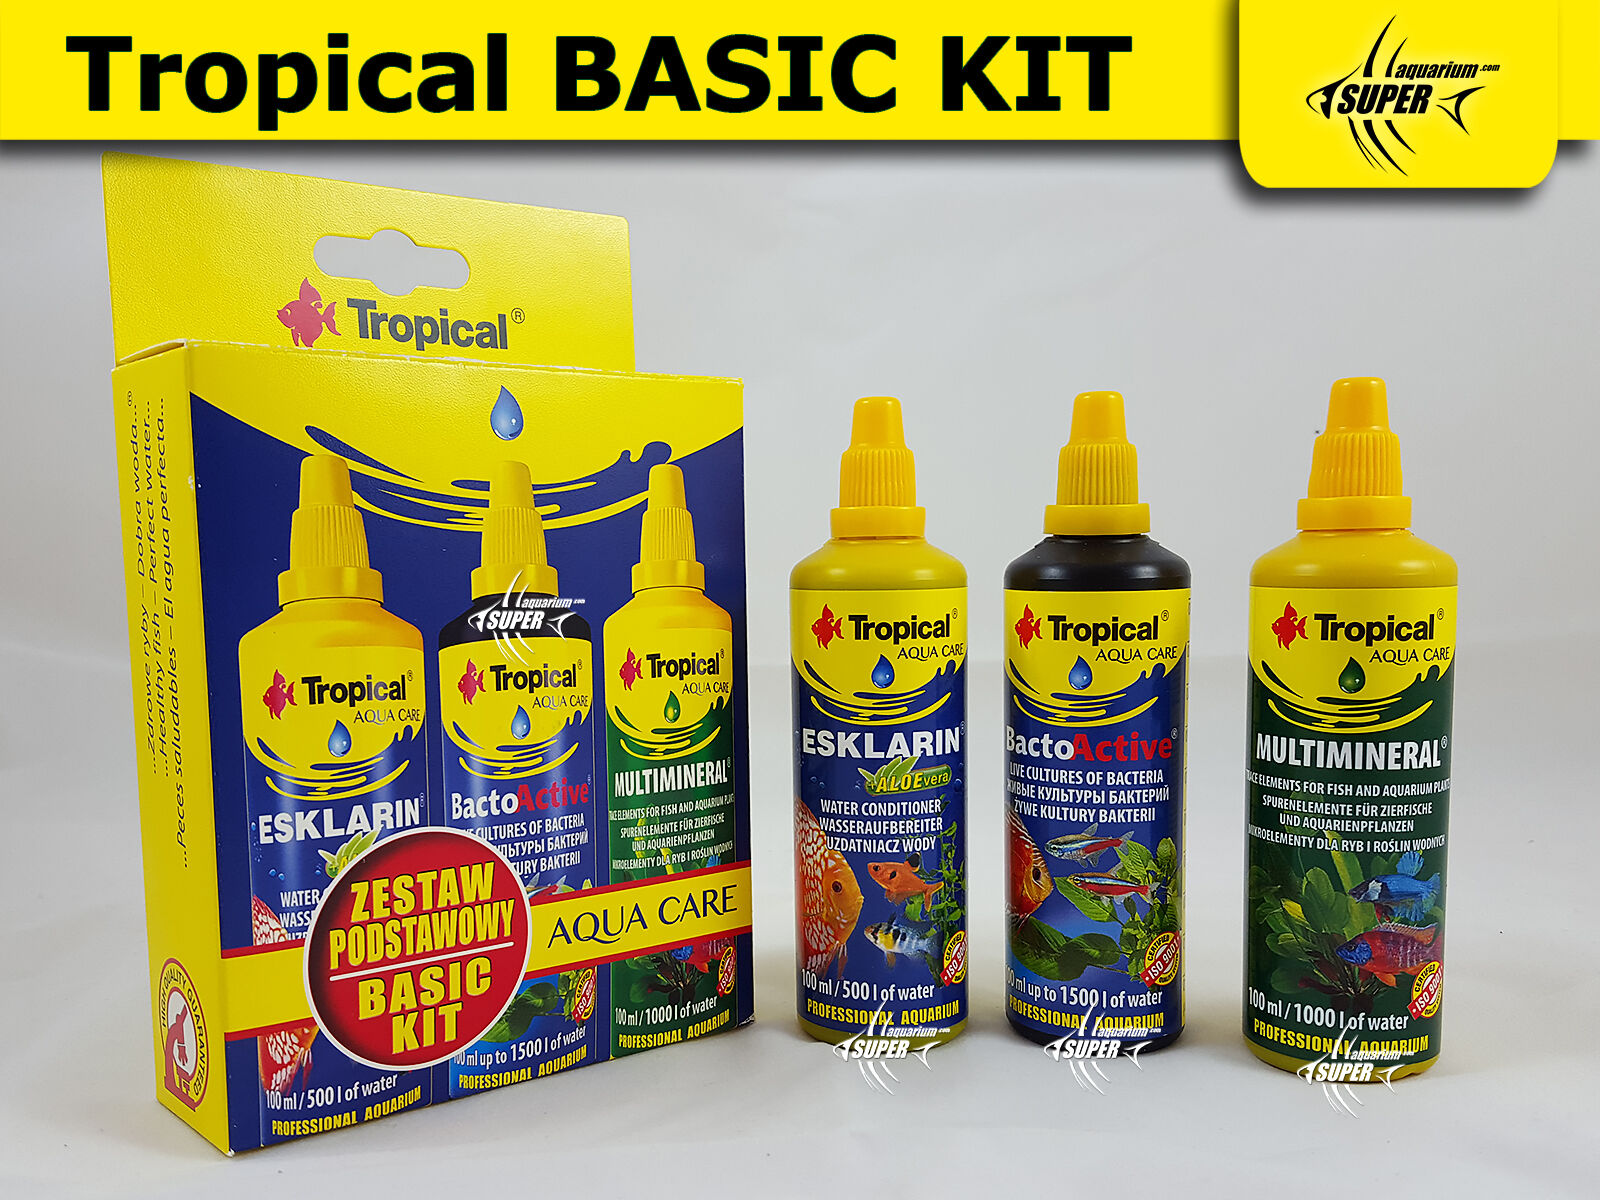 PROFFESIONAL TROPICAL BASIC KIT 3x 100ml Bottle TREATMENT FISH PLANT CONDITIONER